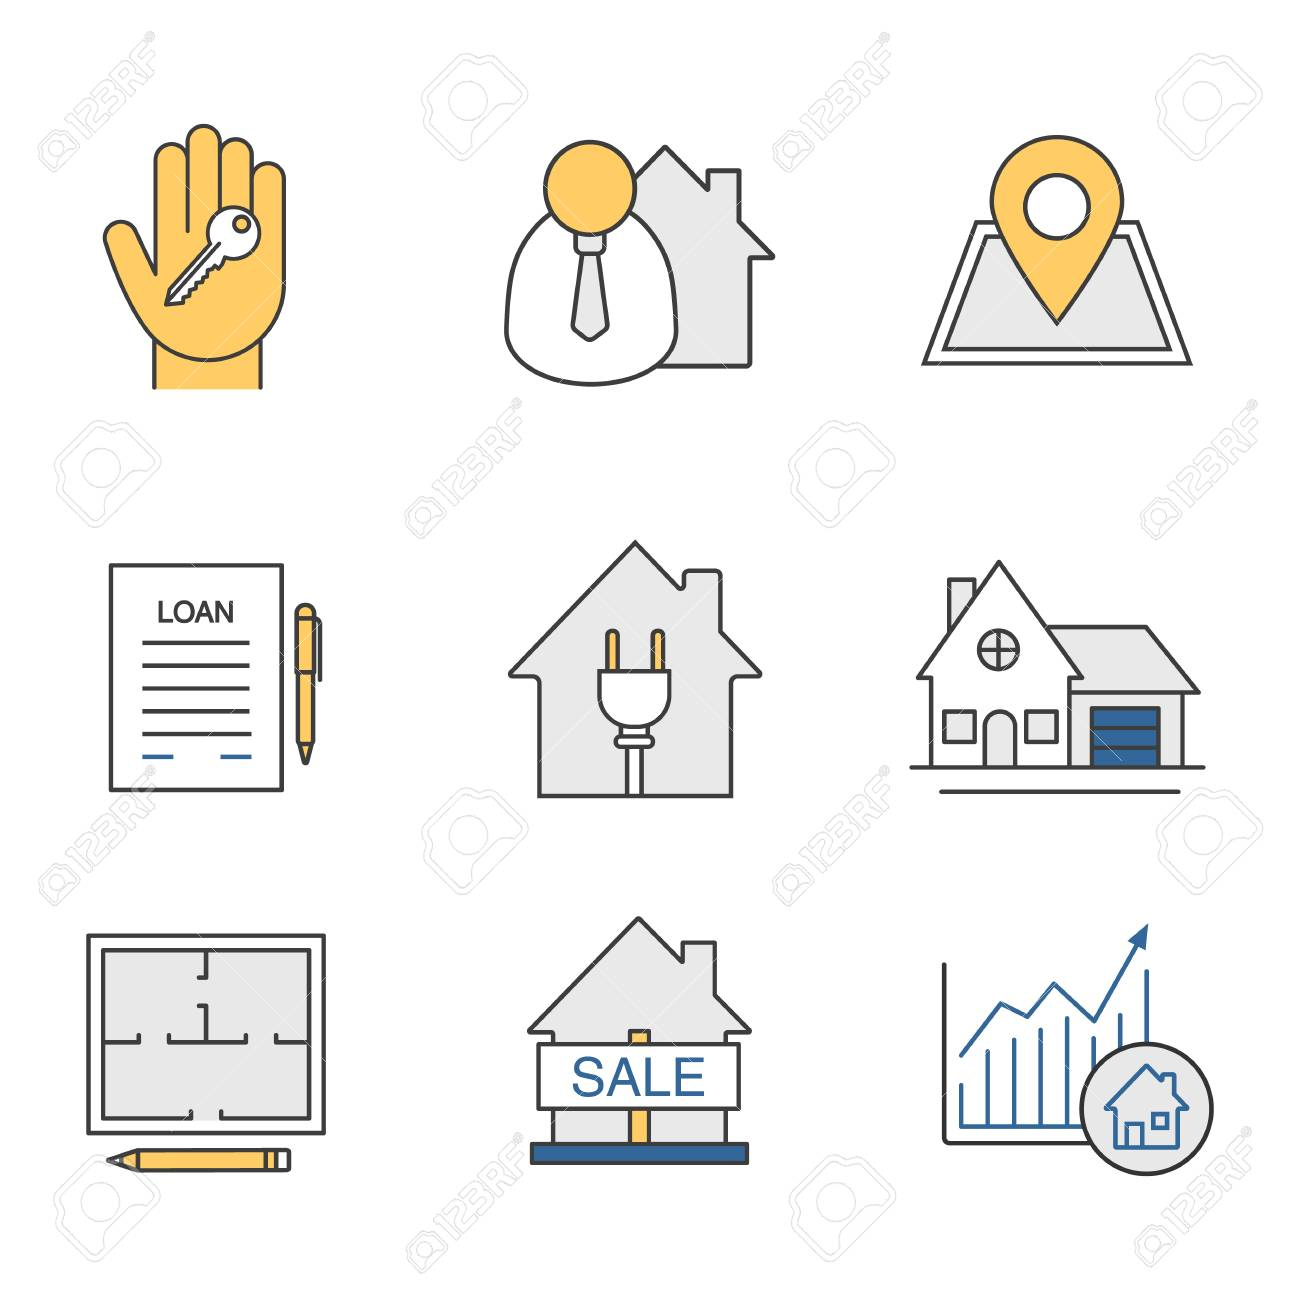 Real Estate Market Color Icons Set Broker Loan Agreement Cottage Royalty Free Cliparts Vectors And Stock Illustration Image 84480190